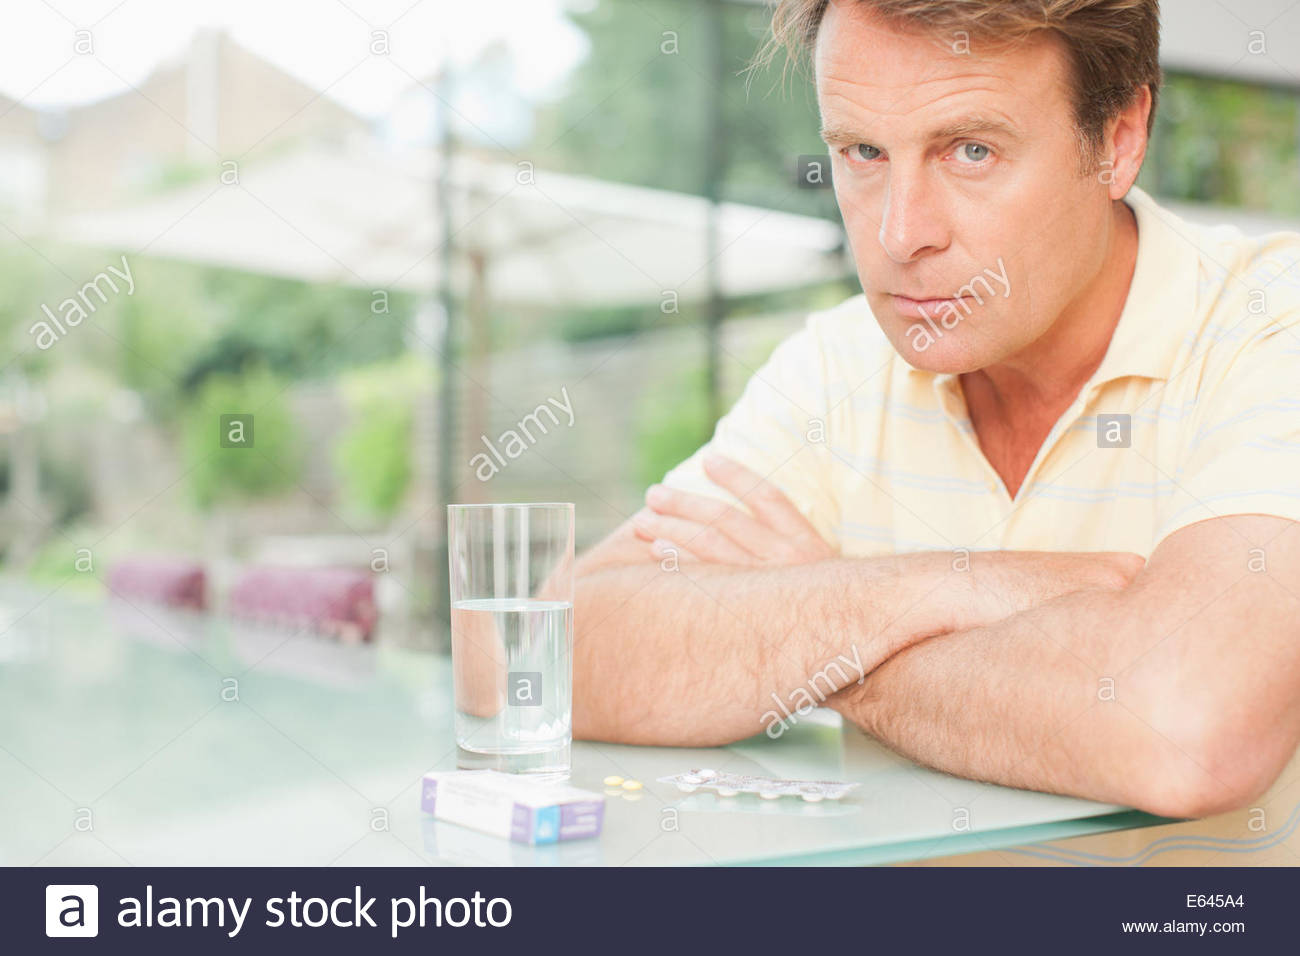 Man sitting with glass of water and box of pills - Stock Image